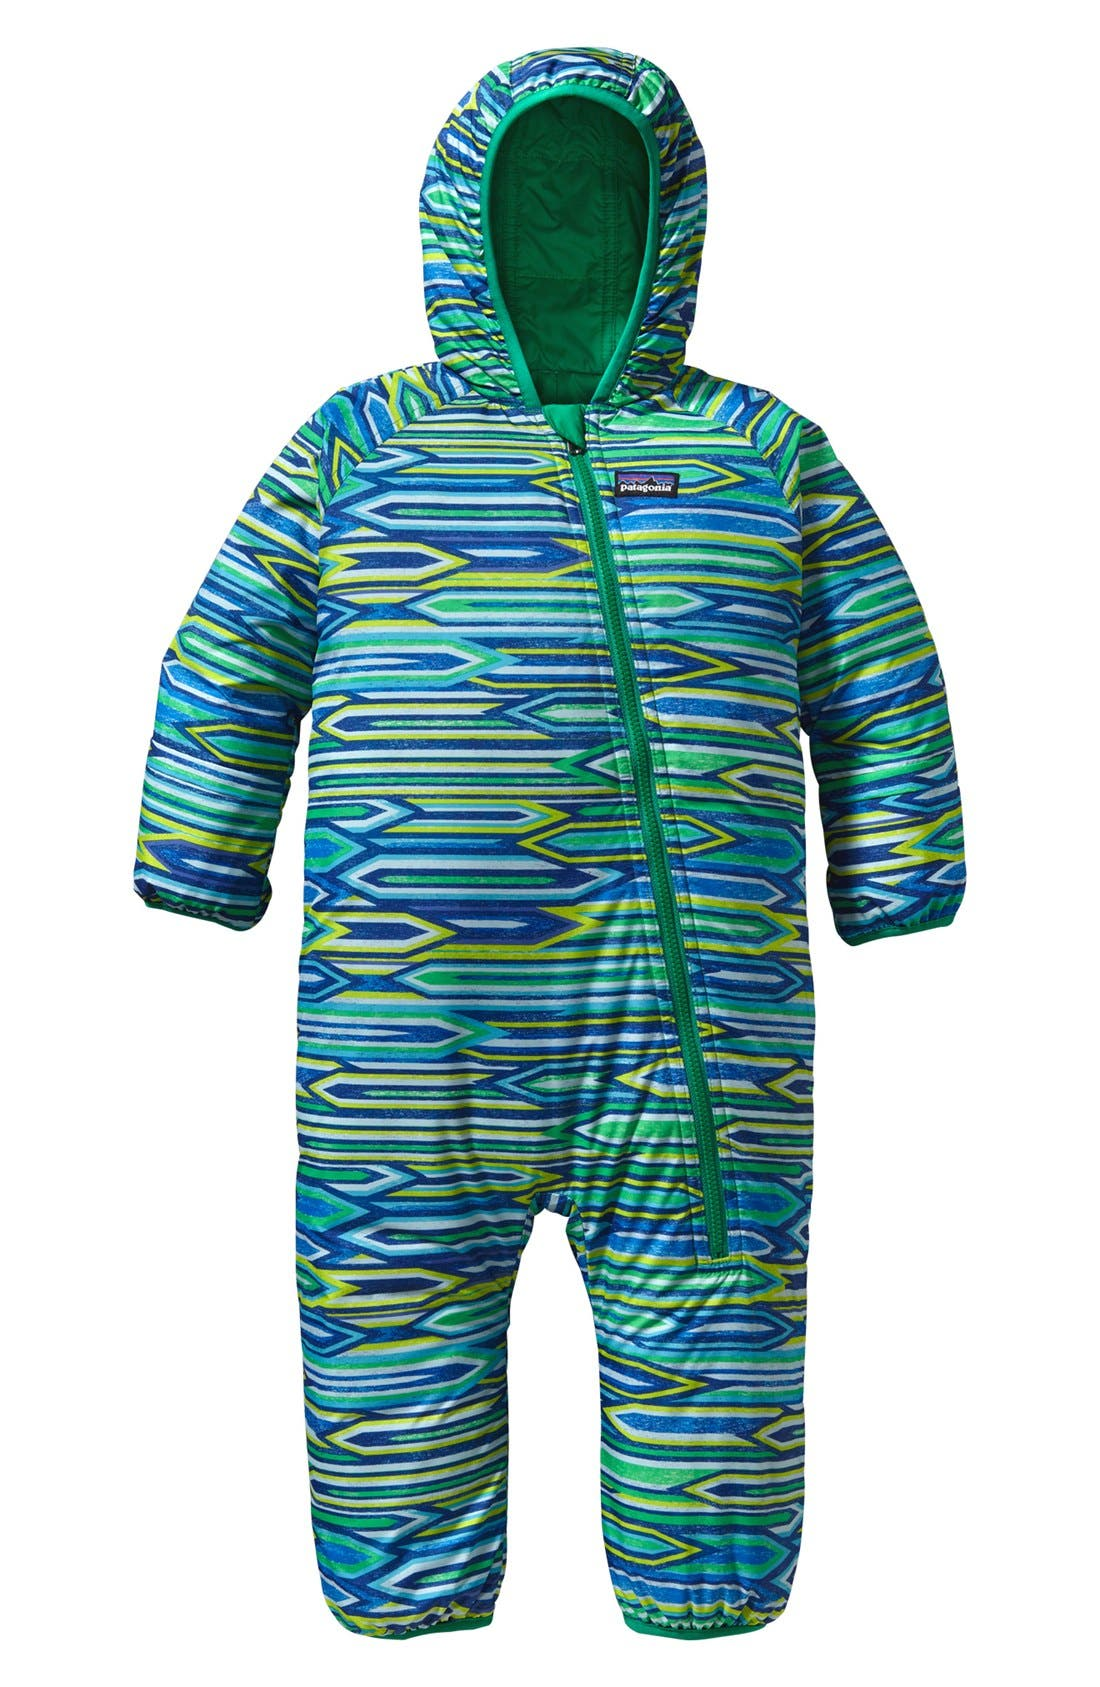 Main Image - Patagonia Reversible Bunting (Infant)